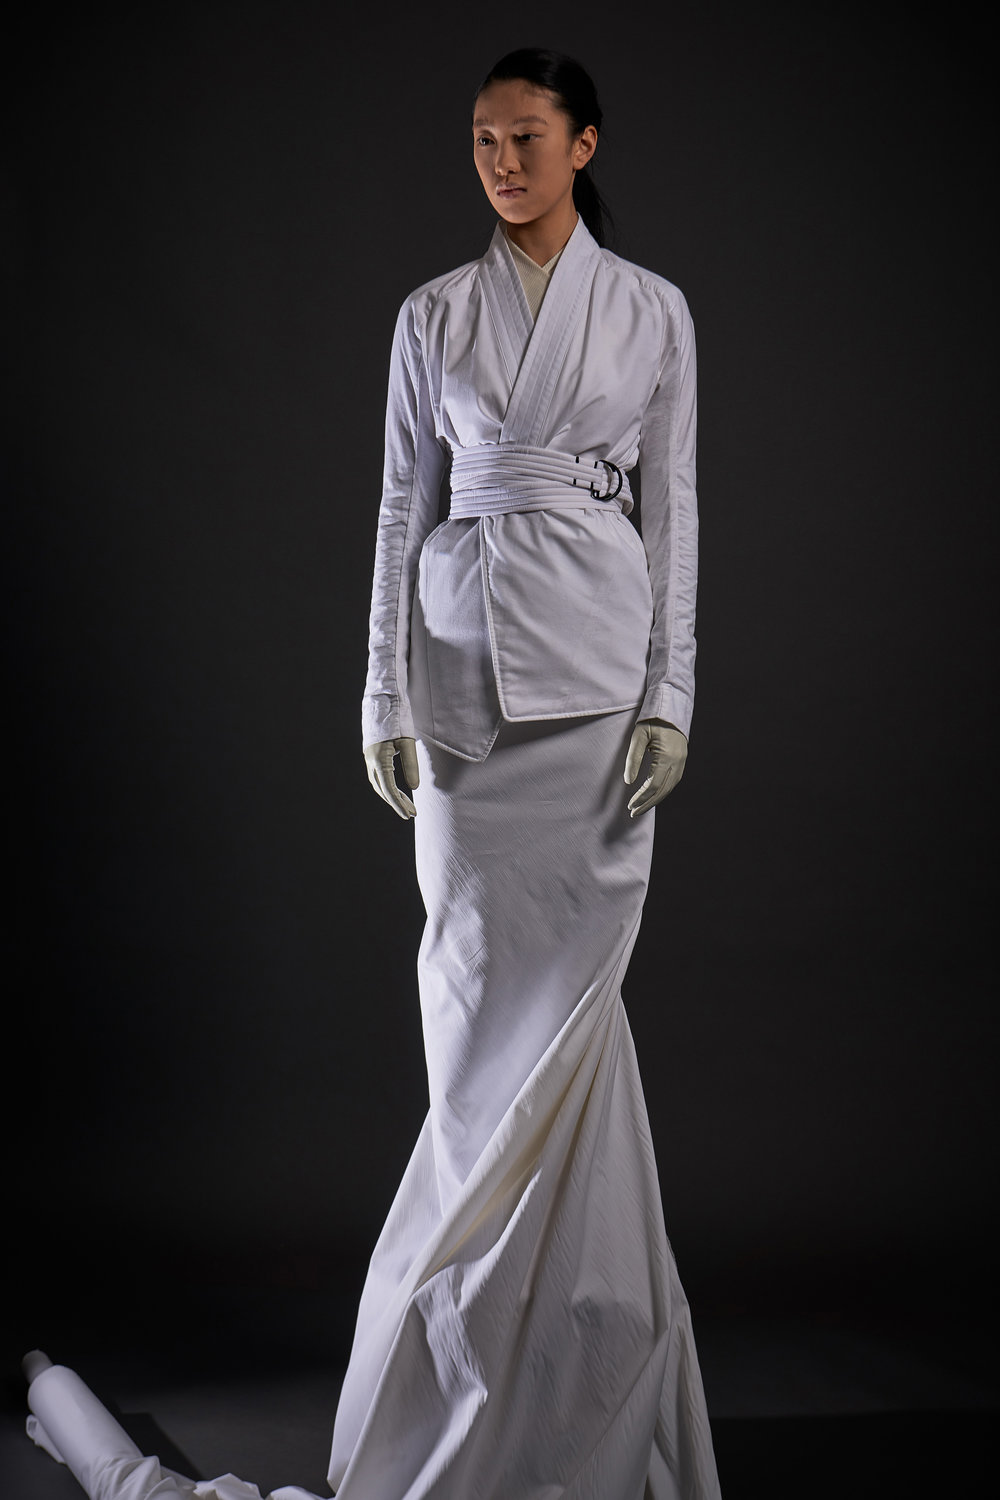 Look 7   ARC Kimono Shirt  / White   ARC Obi Belt  / White